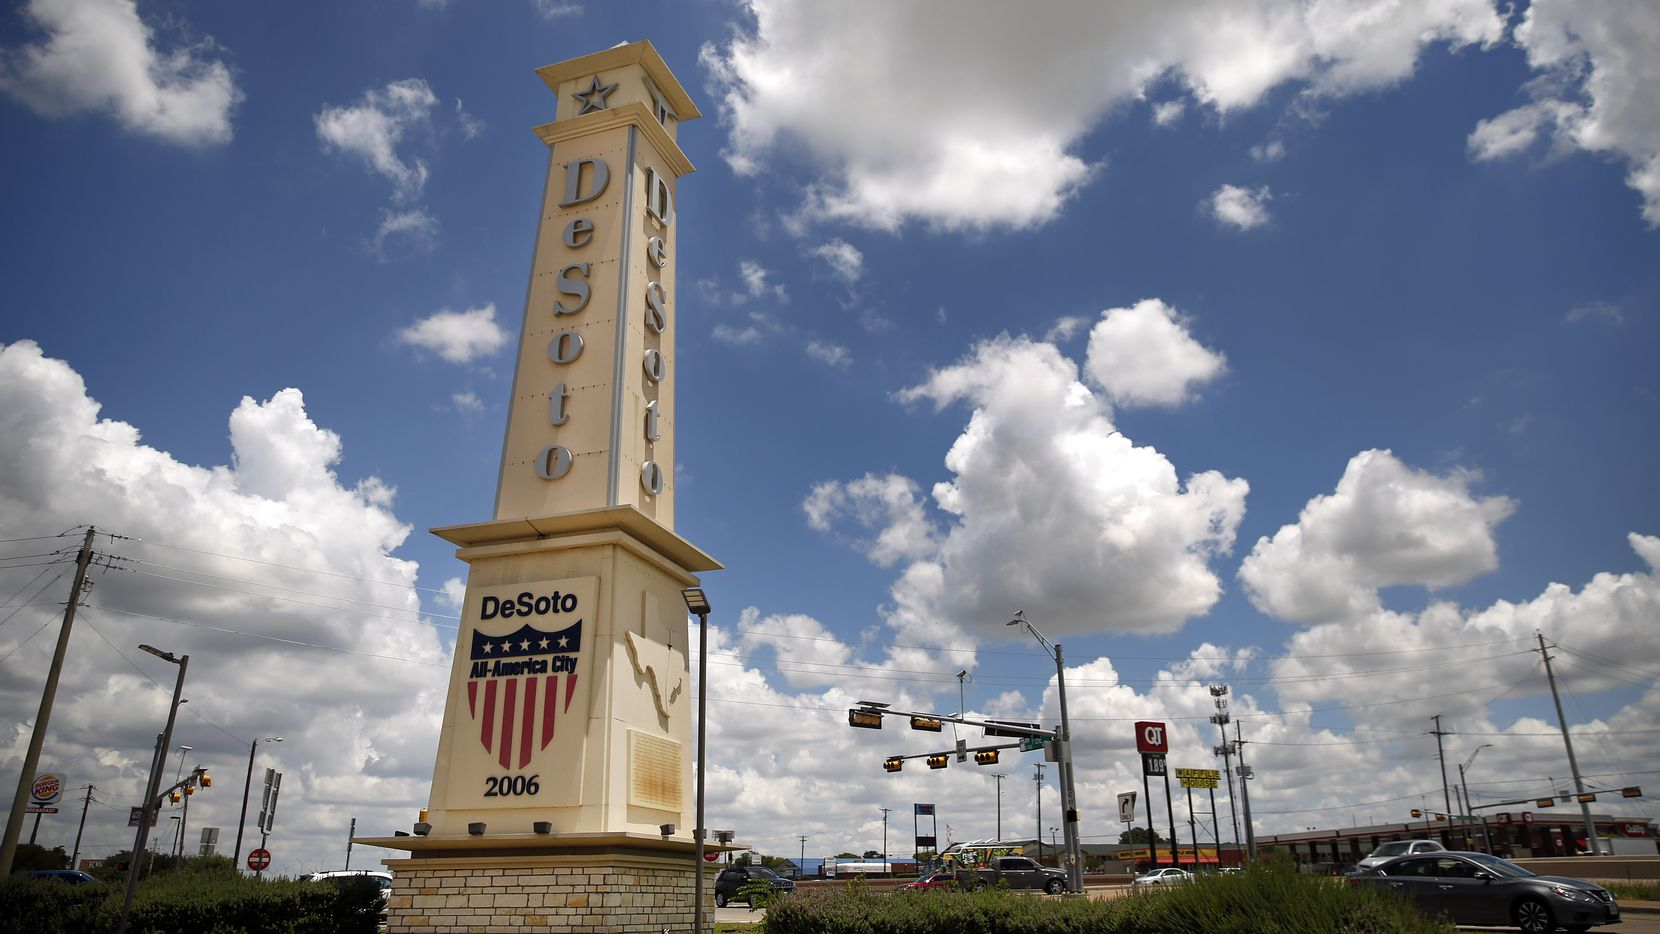 A large obelisk greets people to the City of Desoto, Texas at the intersection of E. Pleasant Run Rd. and Interstate 35E, Wednesday, June 24, 2020.